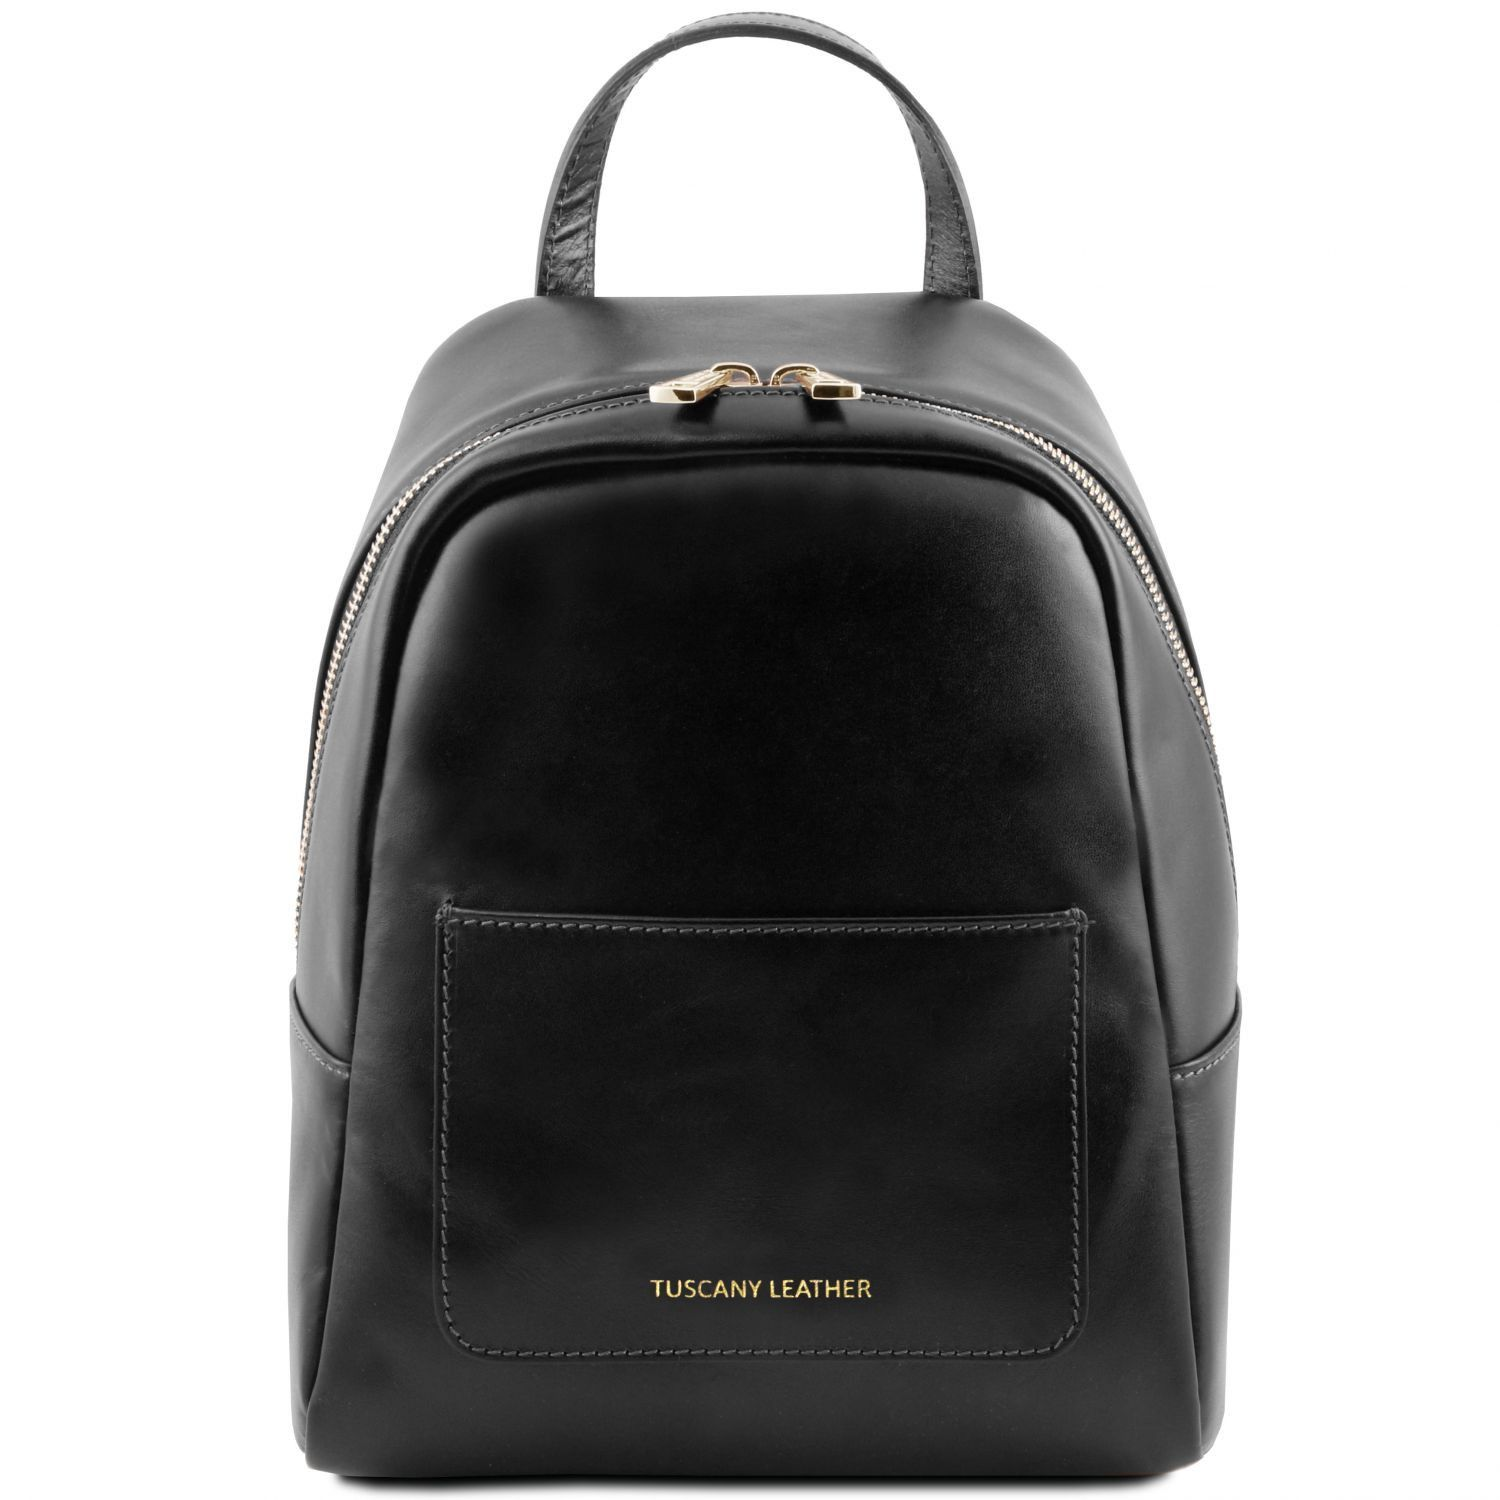 TL Bag - Little leather backpack for woman Black TL141614 - Buy ...